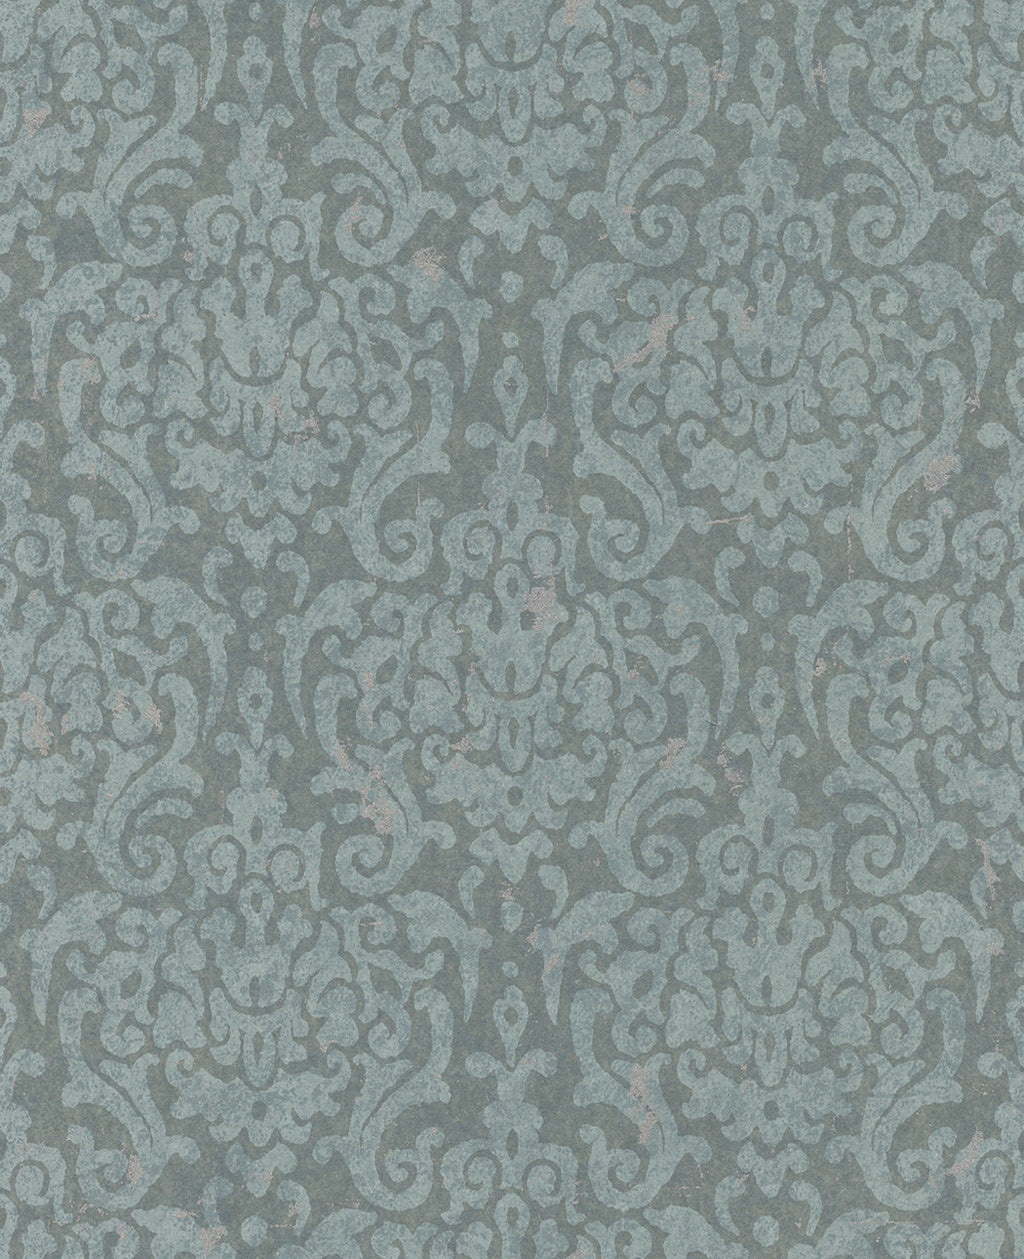 Metallic Weathered Damask Wallpaper Teal and Light Blue R4751